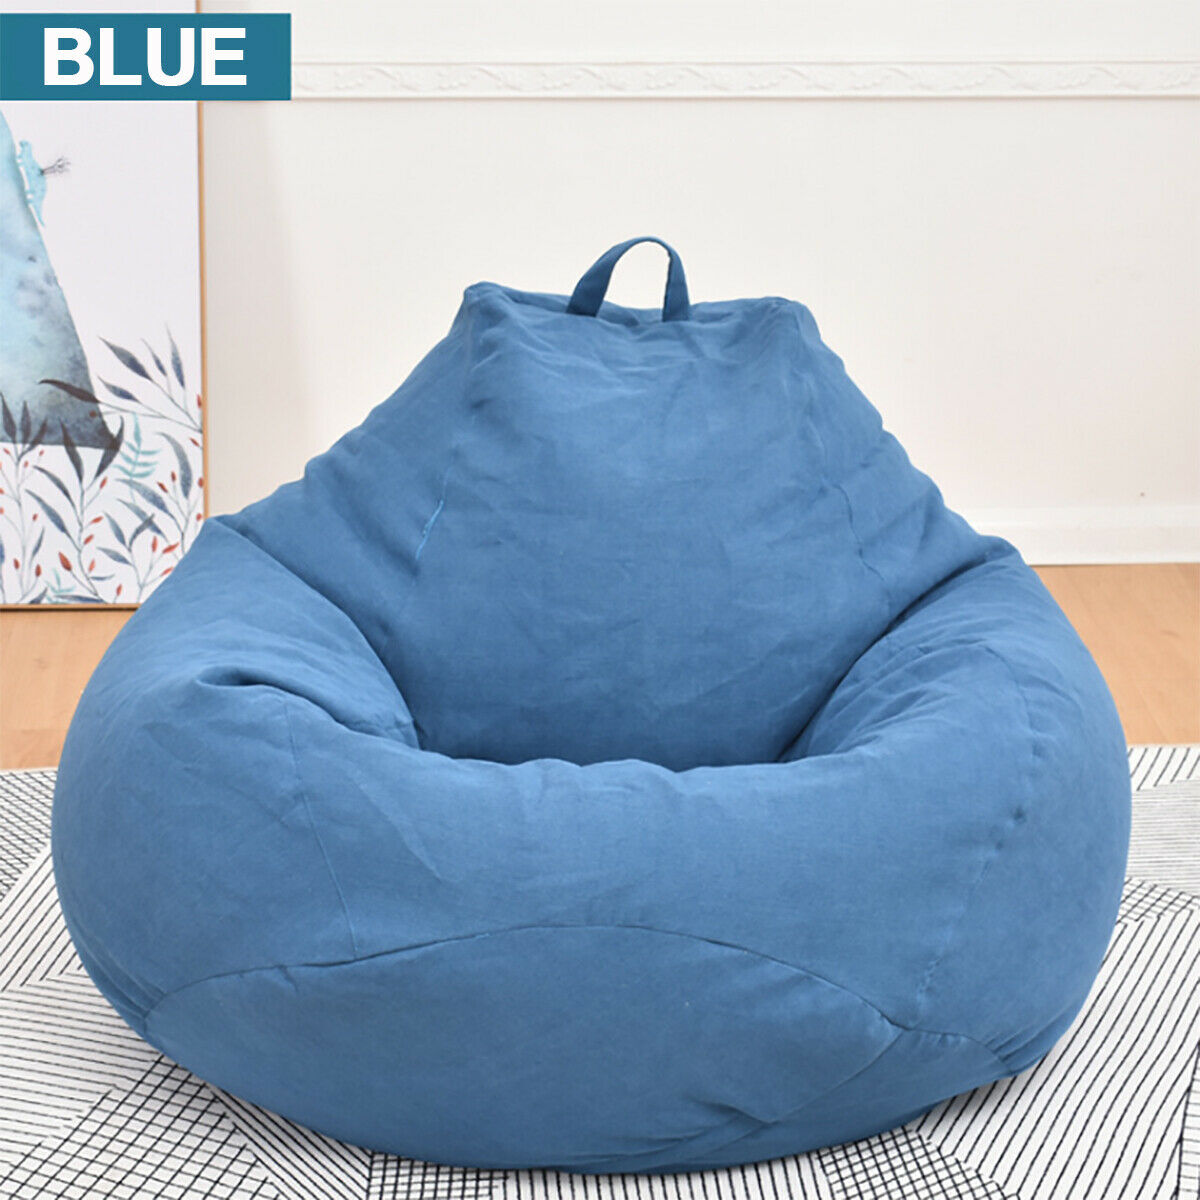 Brilliant Large Bean Bag Chairs Couch Sofa Cover Indoor Lazy Lounger For Adults Kids Wash Beatyapartments Chair Design Images Beatyapartmentscom